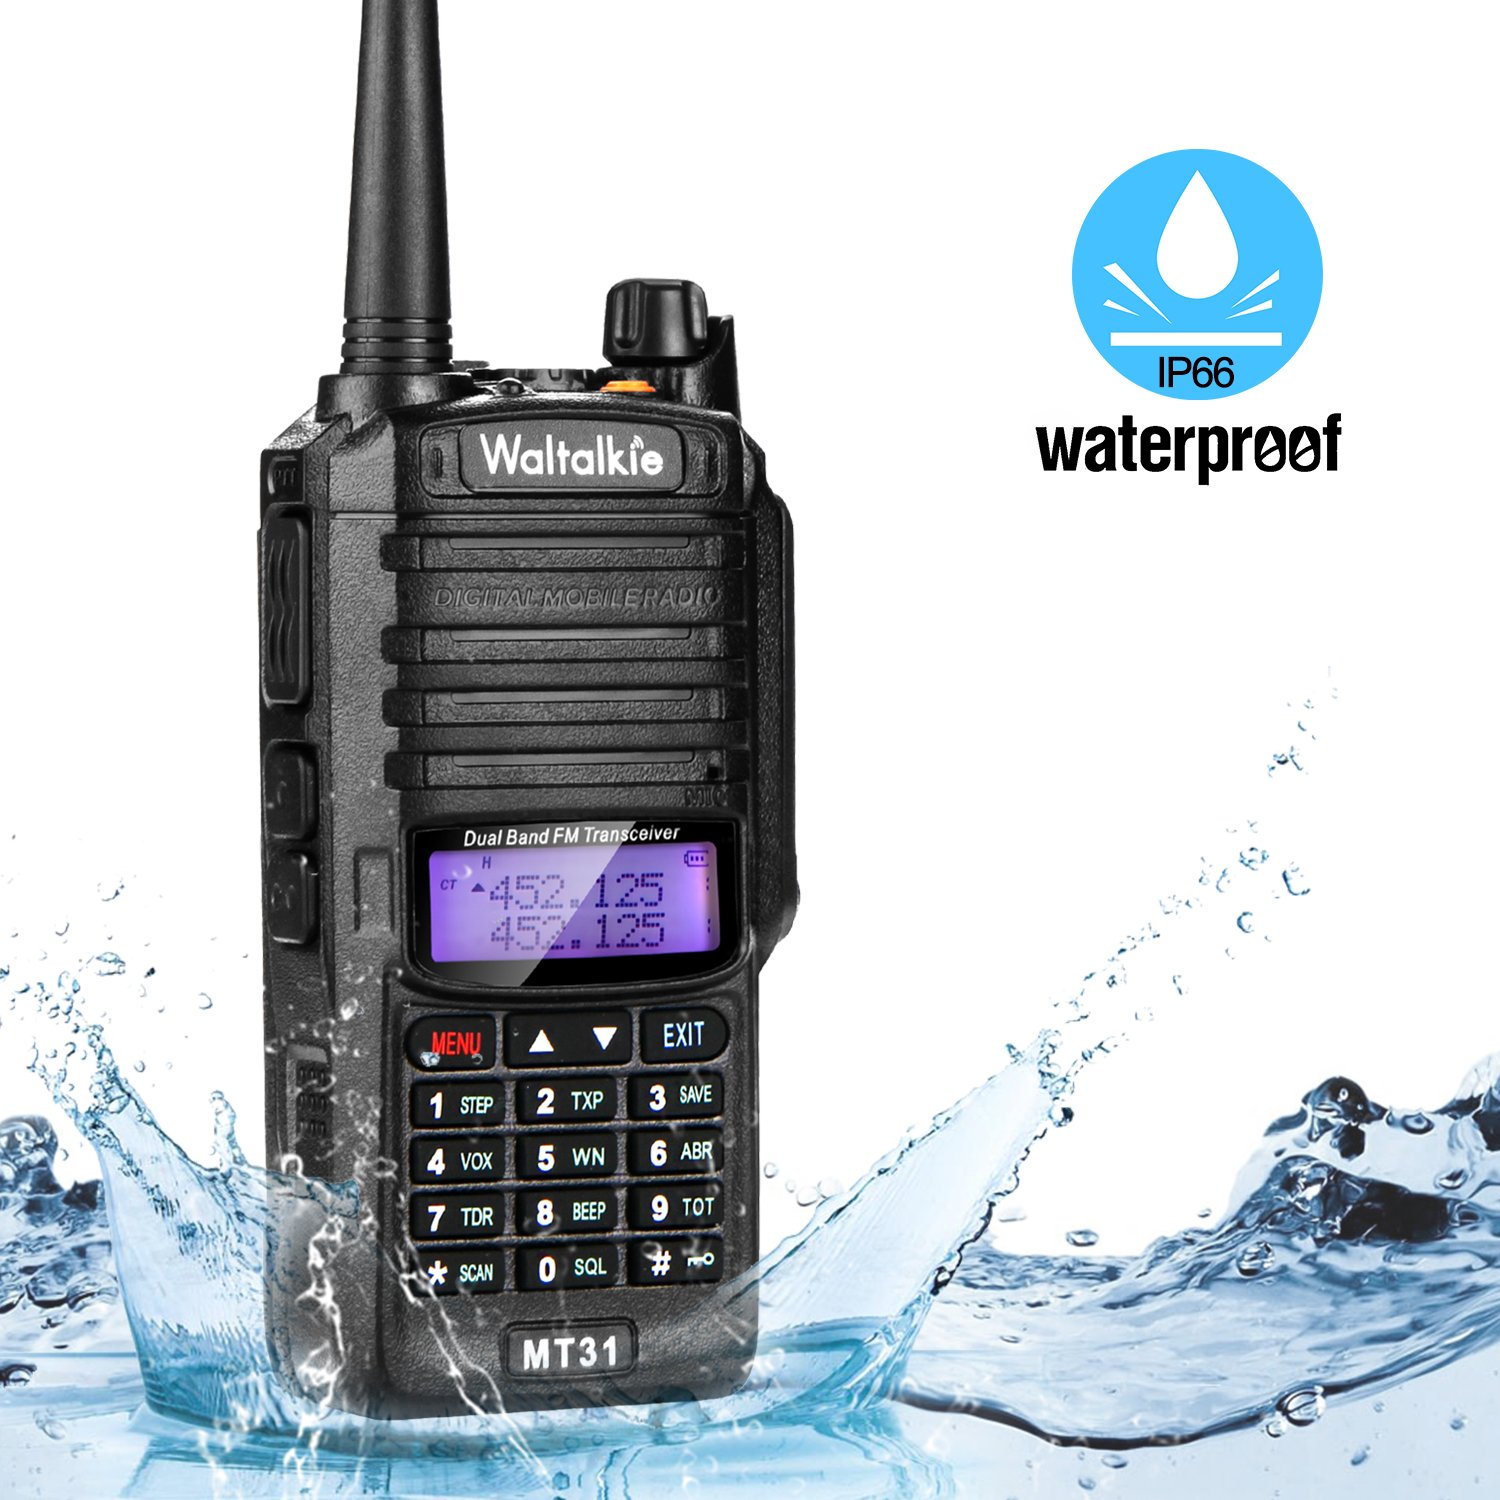 Wireless Radio Transceiver, IP66 Waterproof & Dustproof Two Way Radio Walkie Talkie with Headset/LED Flashlight/Battery/Charger for Indoor & Outdoor Activities